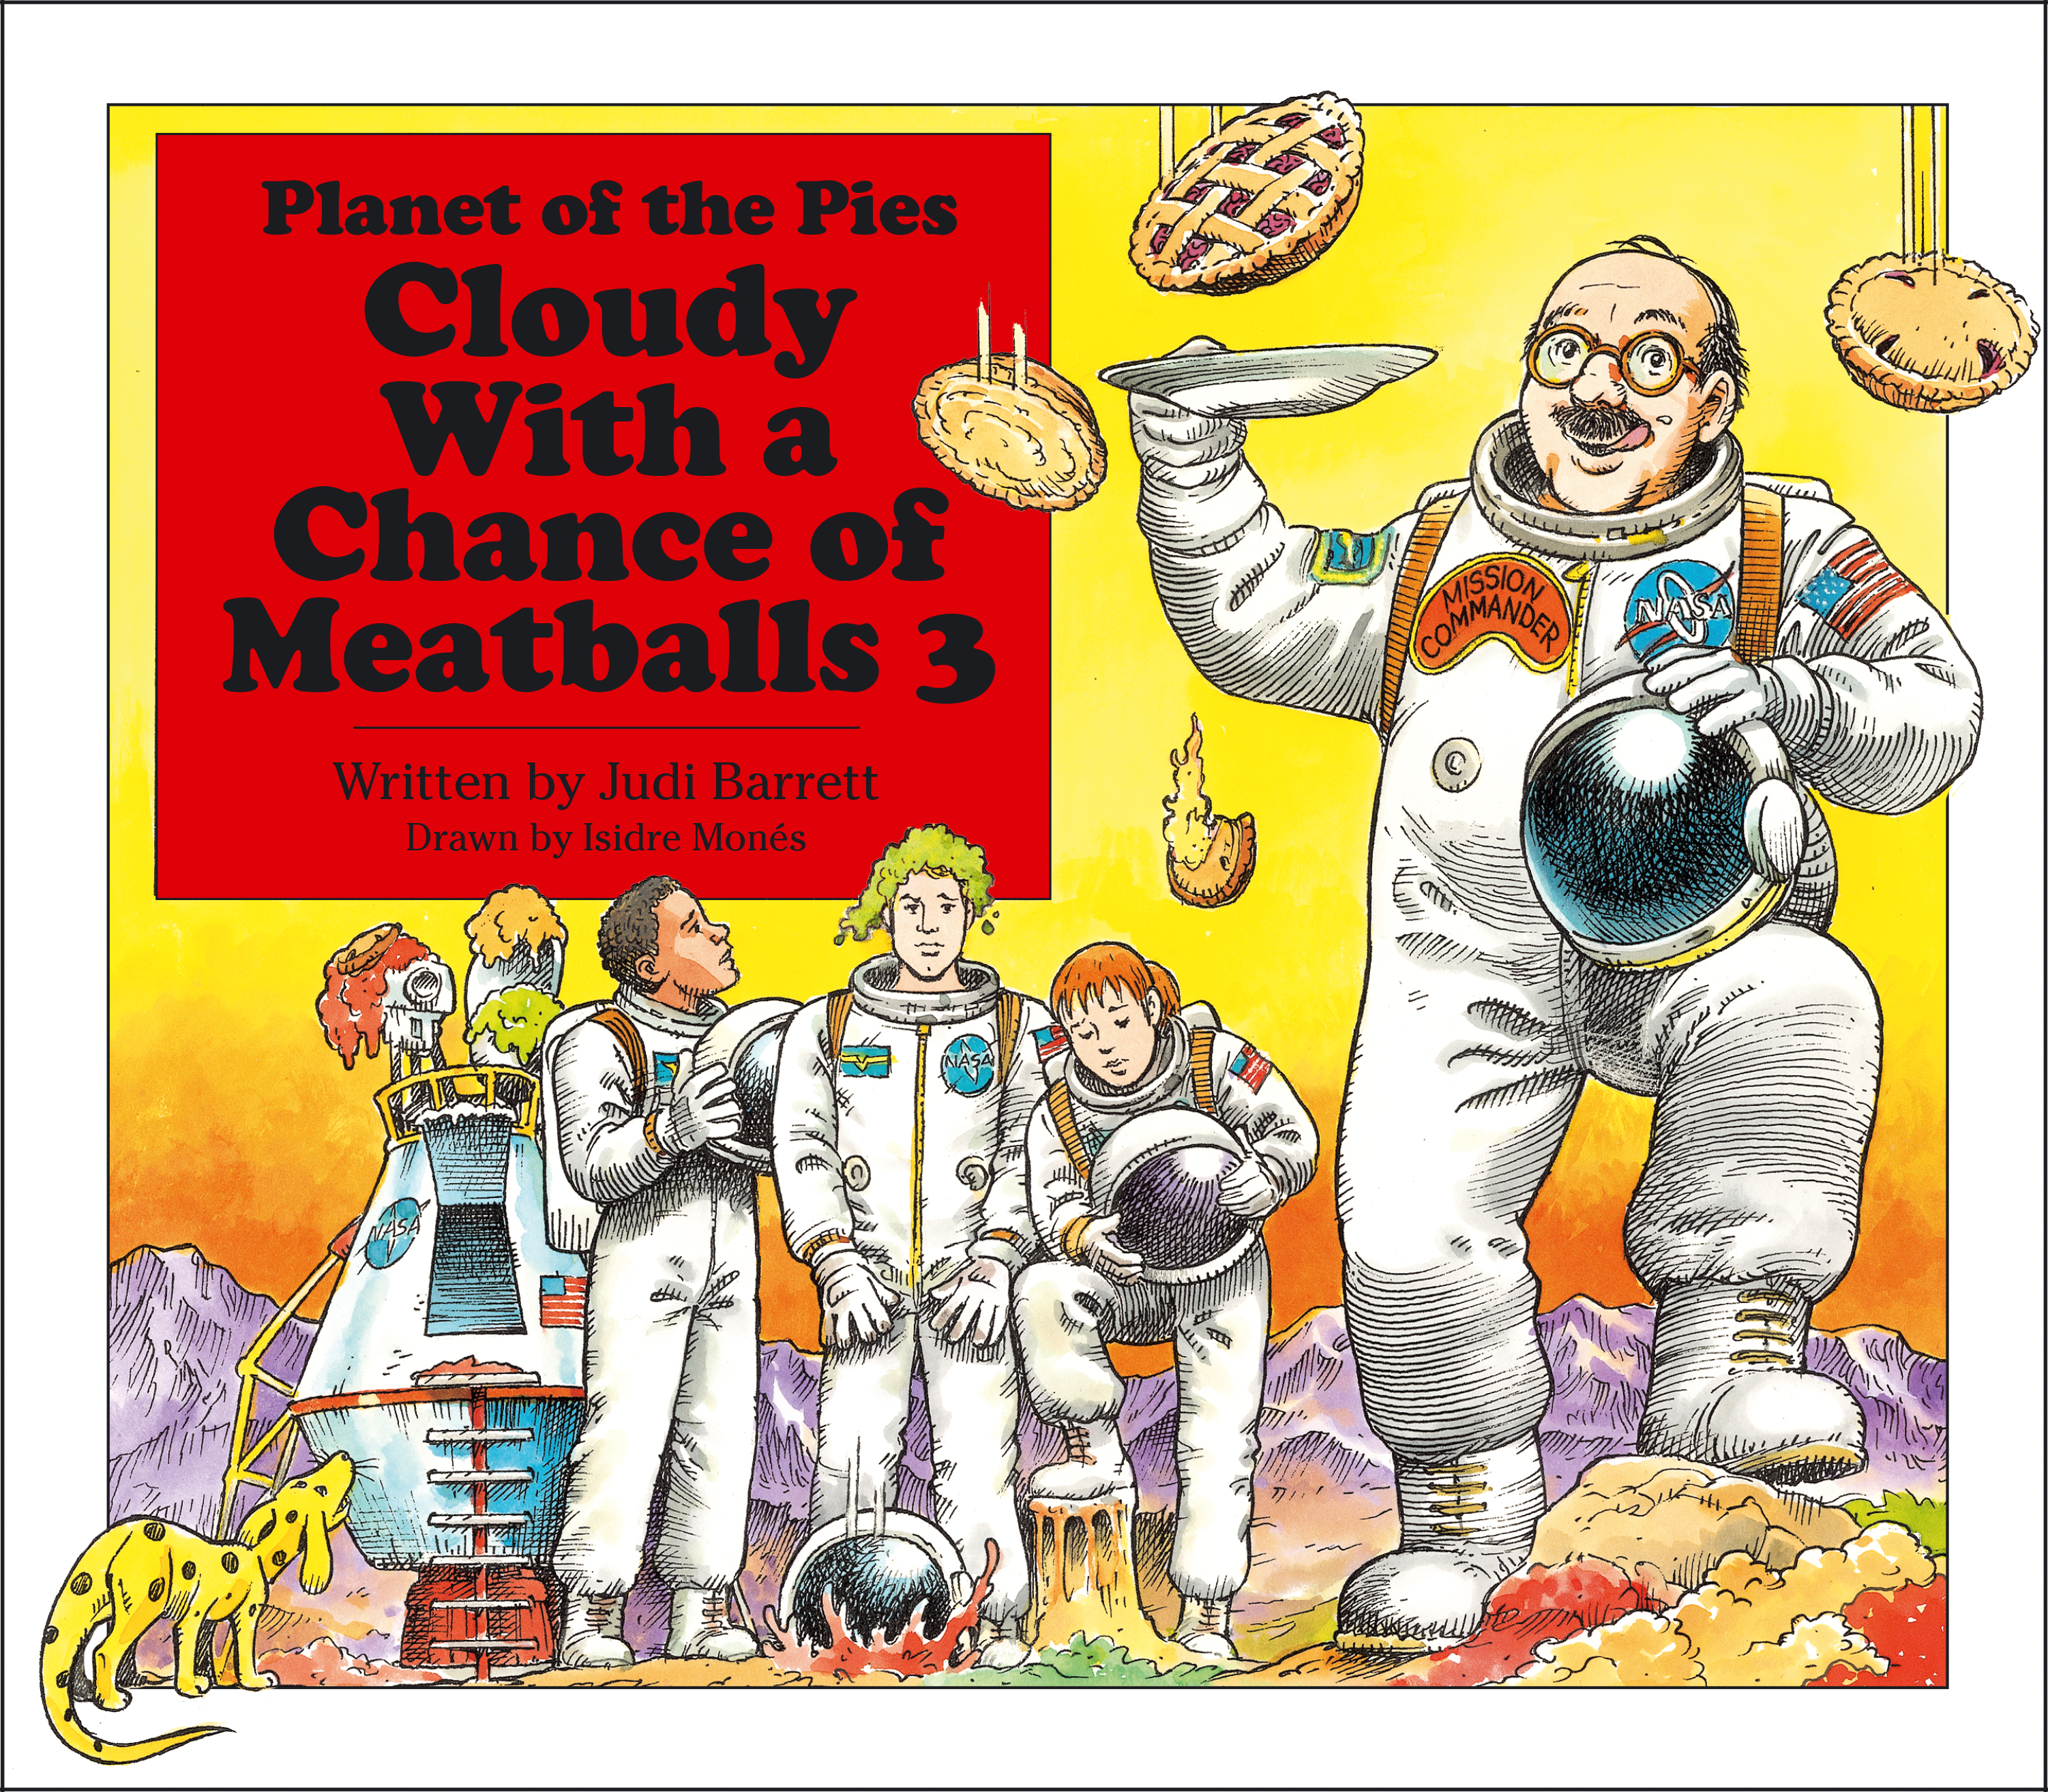 Cloudy With a Chance of Meatballs 3 | Book by Judi Barrett ...